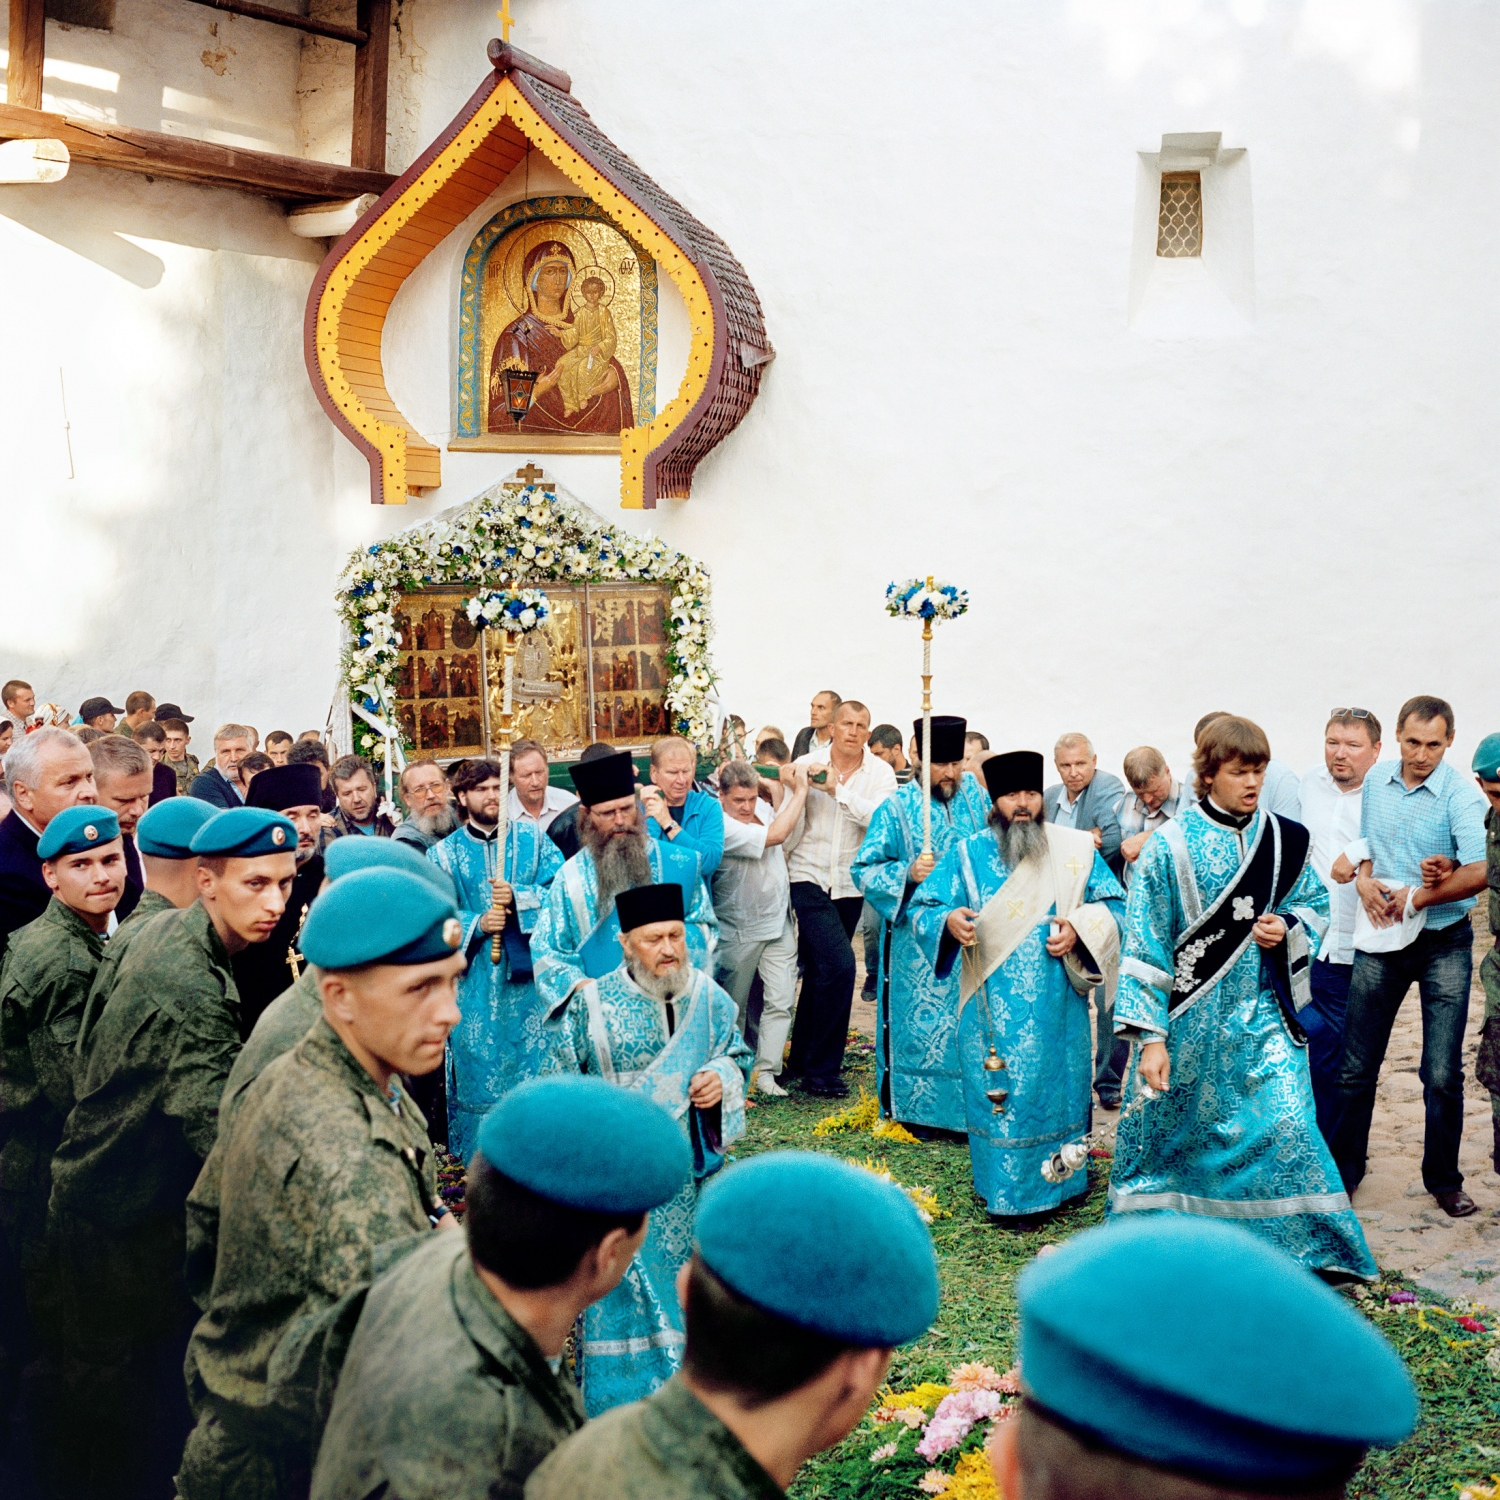 An icon is carried around the Pechory Monastery on the day of the Dormition of the Mother of God. Both civilians and members of the Russian Army gather to help protect the icon as it's viewed by the faithful—a group that includes Setos from both sides of the border as well as Russian Orthodox believers.